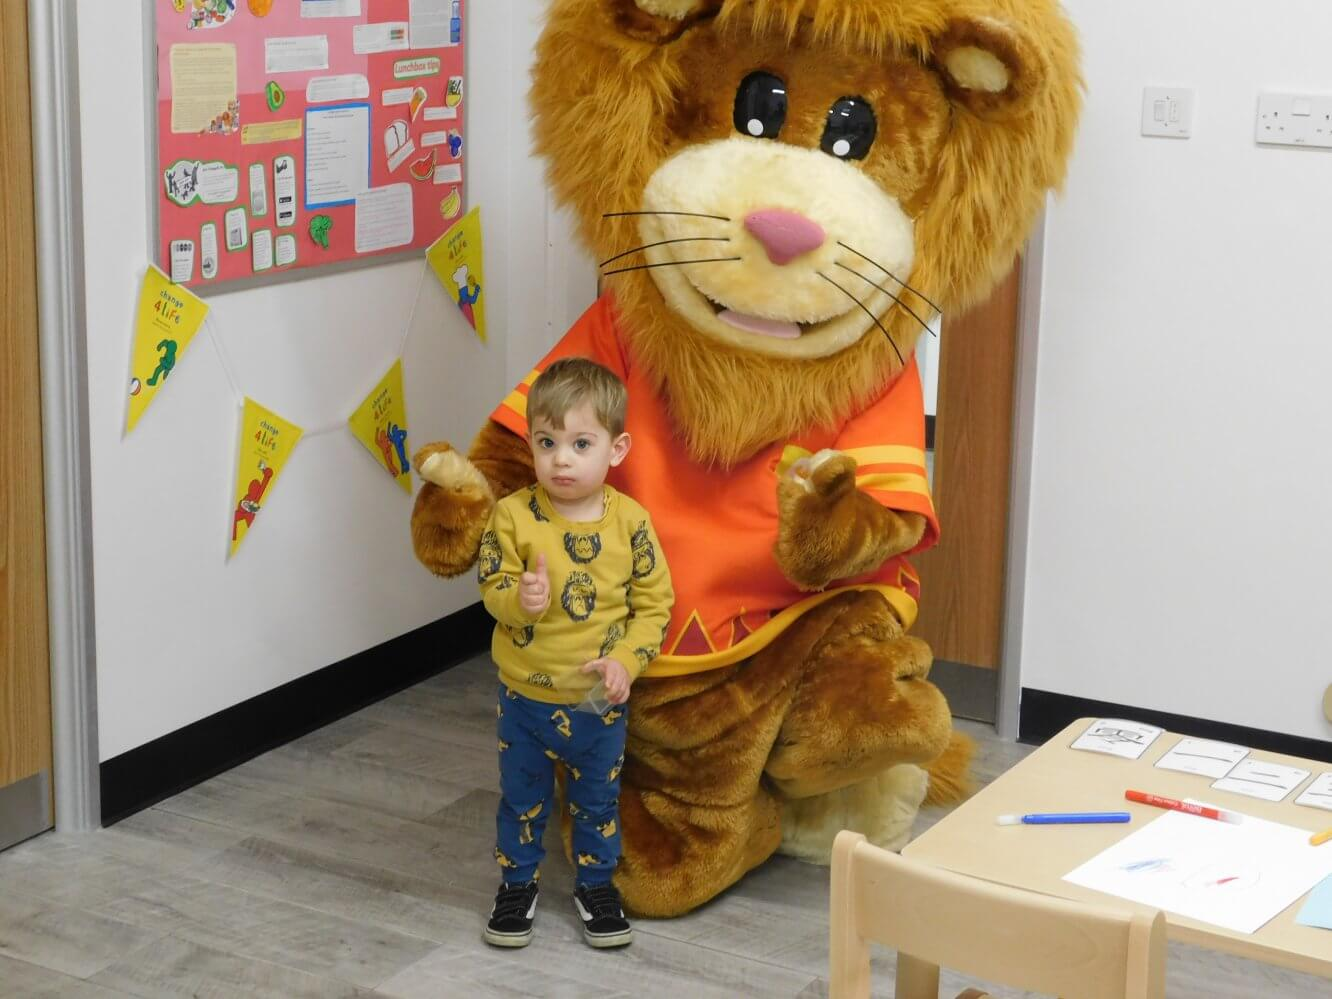 Lenny the Mascot with Child